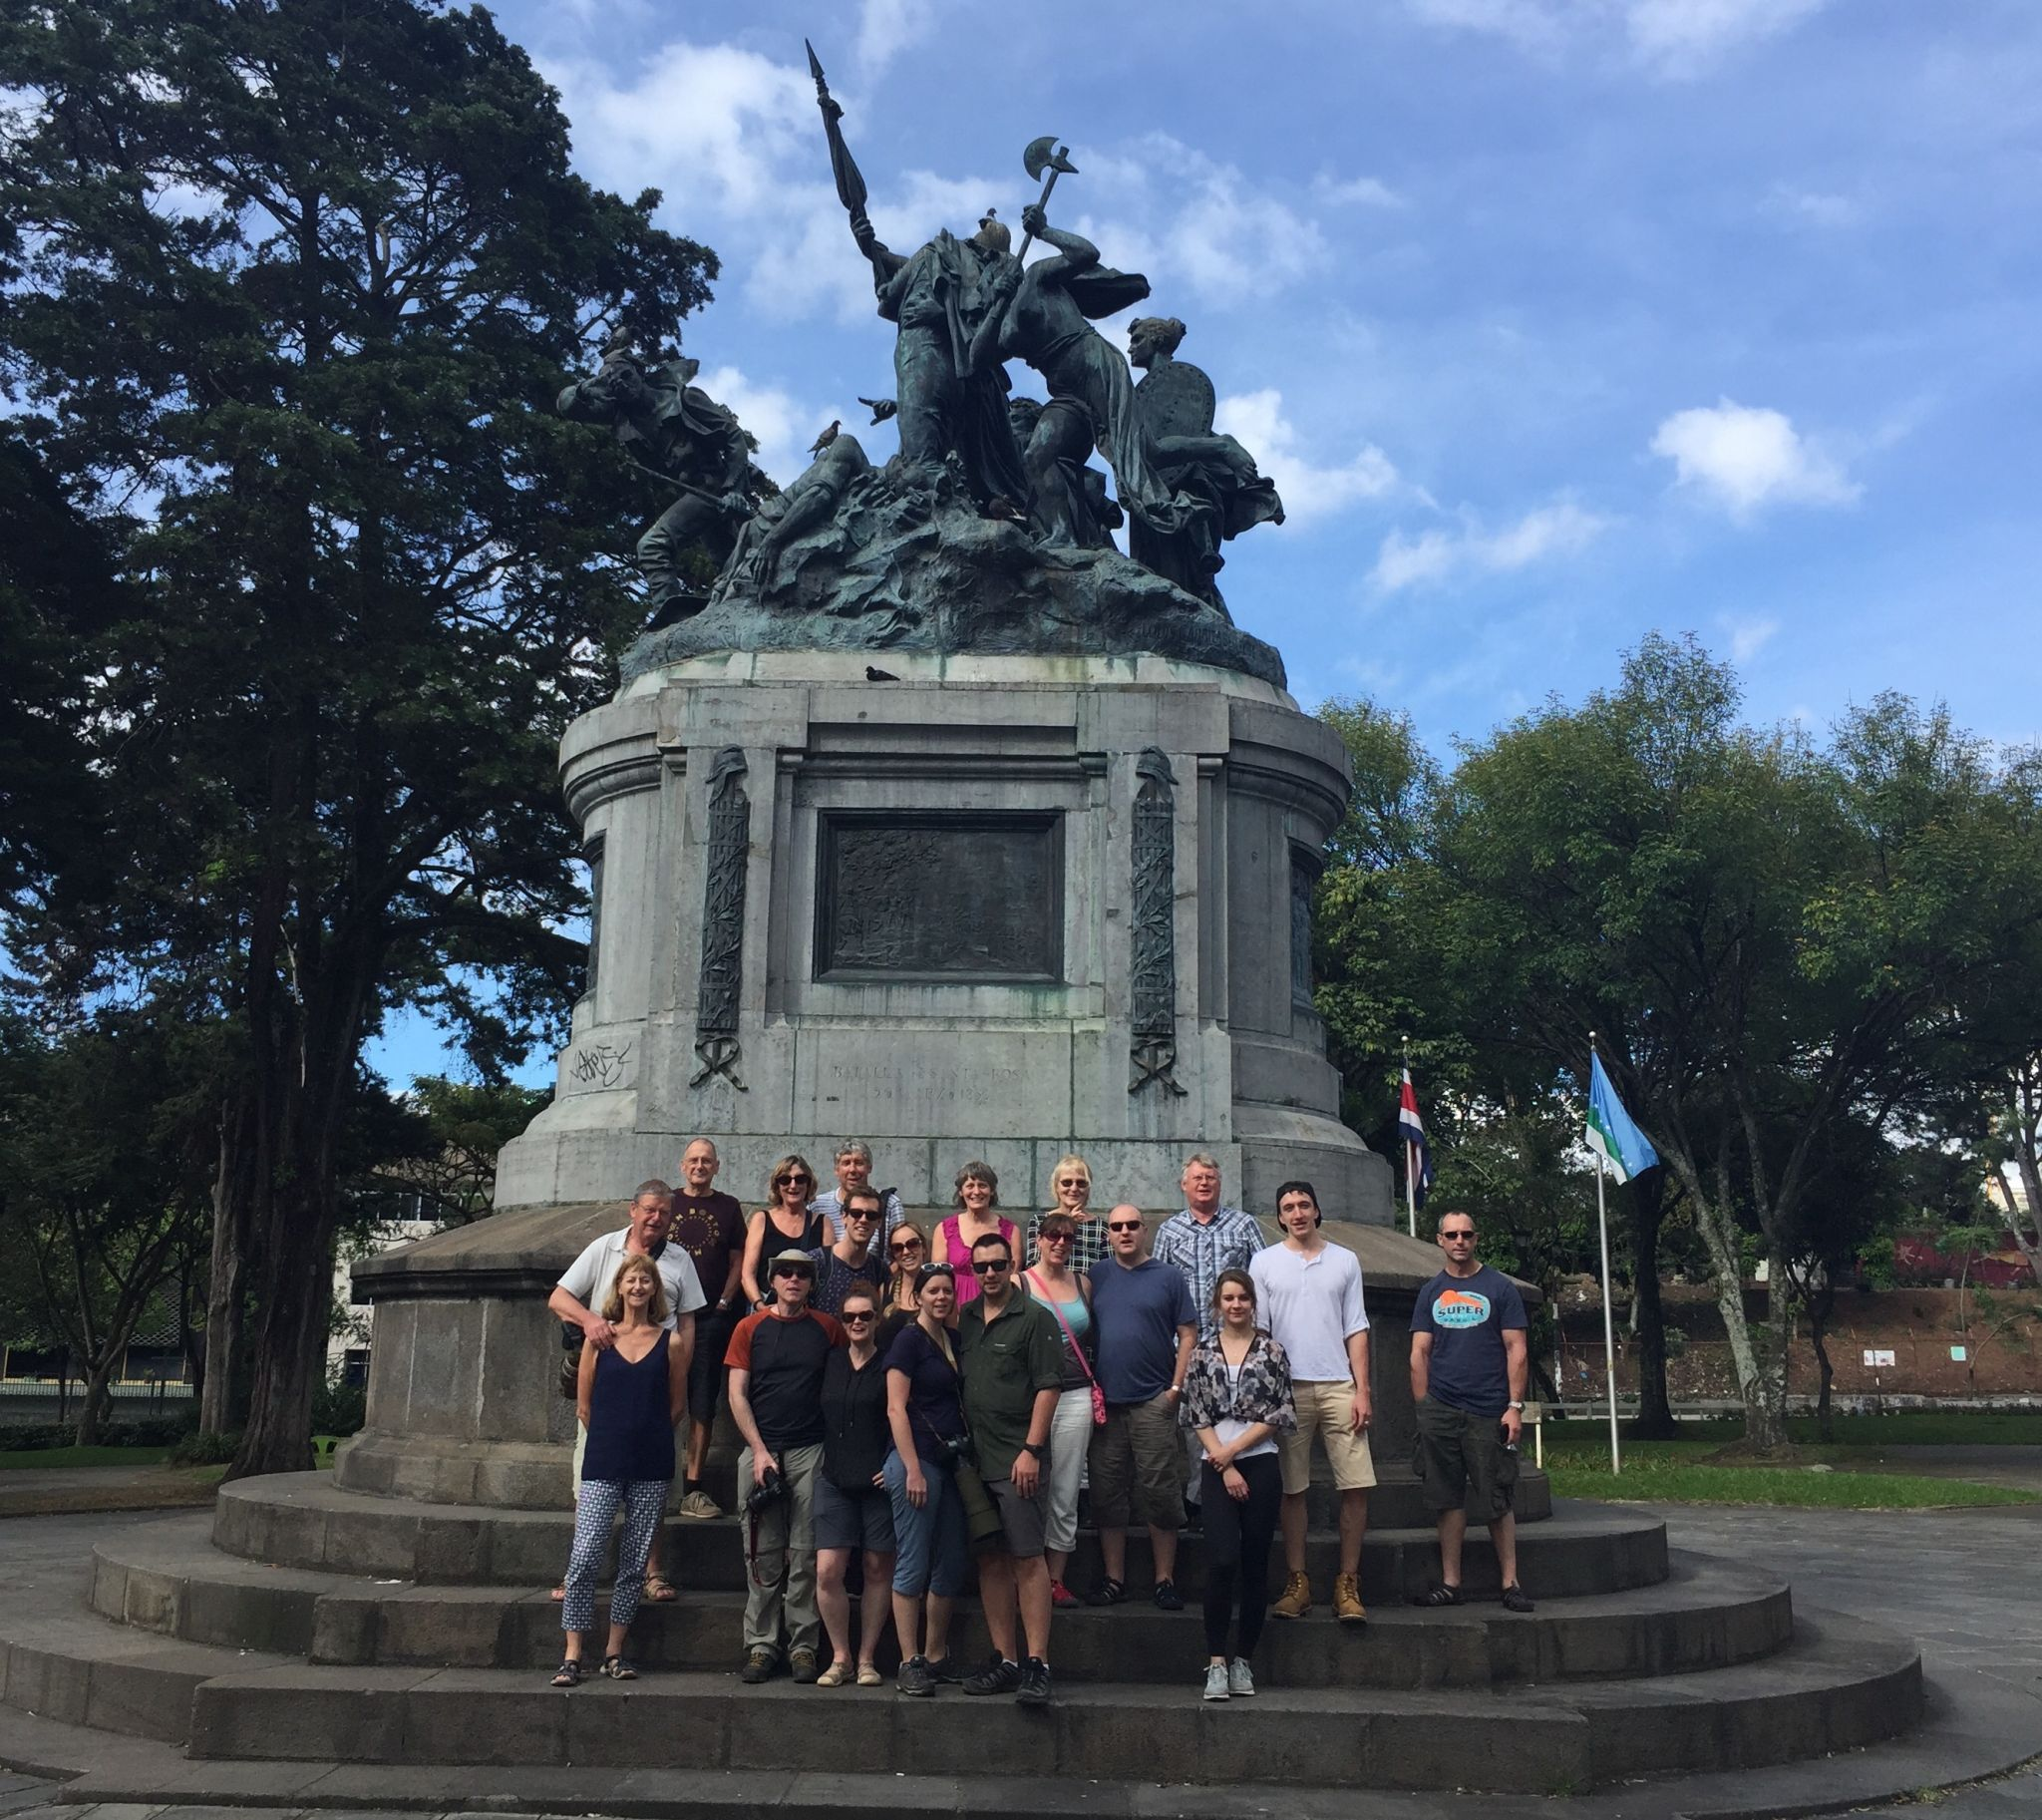 Costa Rica Travel Diaries: Do You Know the Way to San Jose? A Grand Tour group photo in Parque Nacional, San Jose